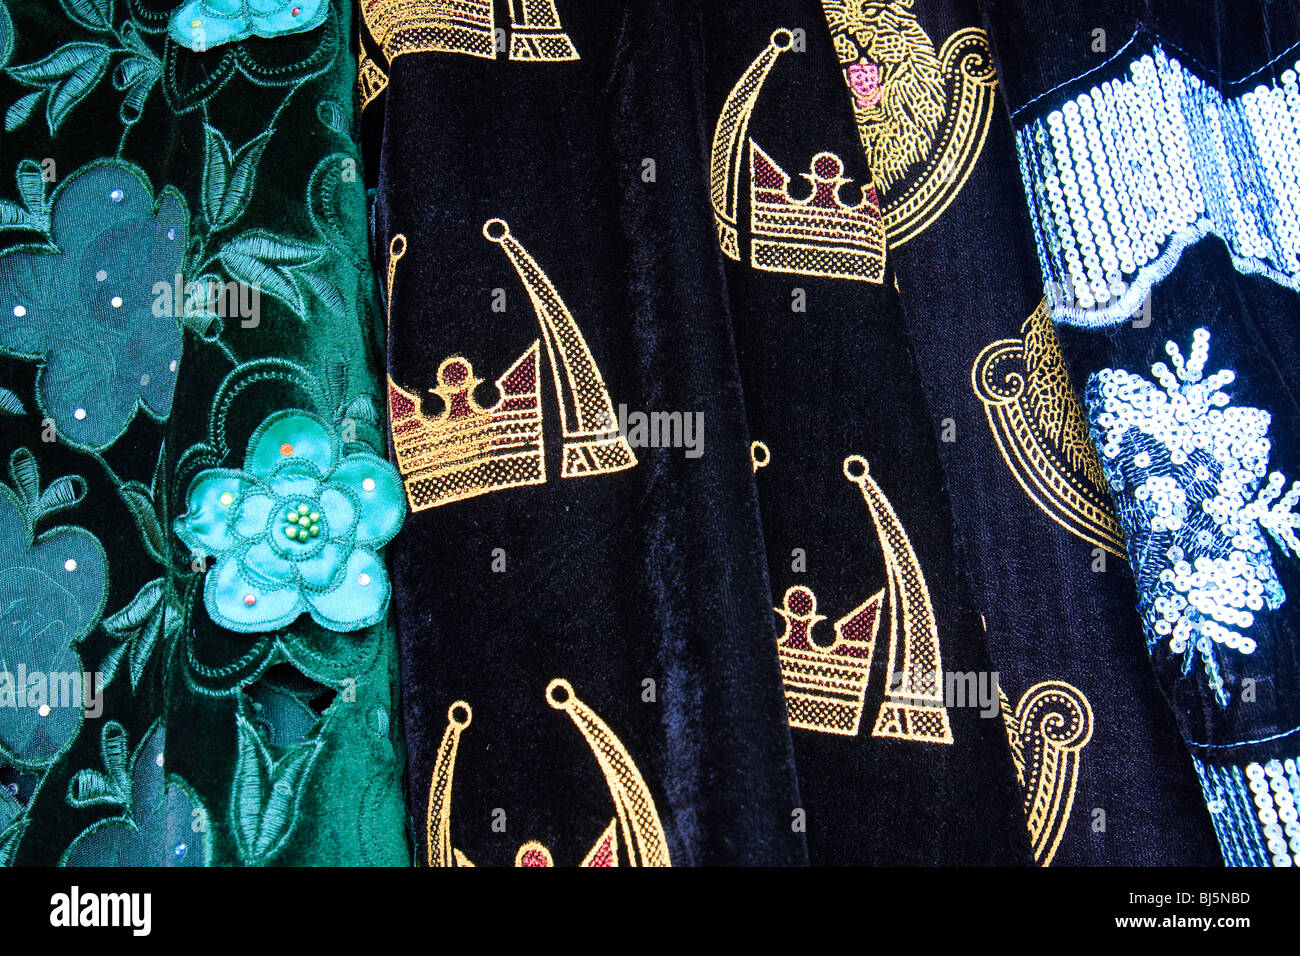 Africa Cameroon Mamfe Market Textile Textiles - Stock Image